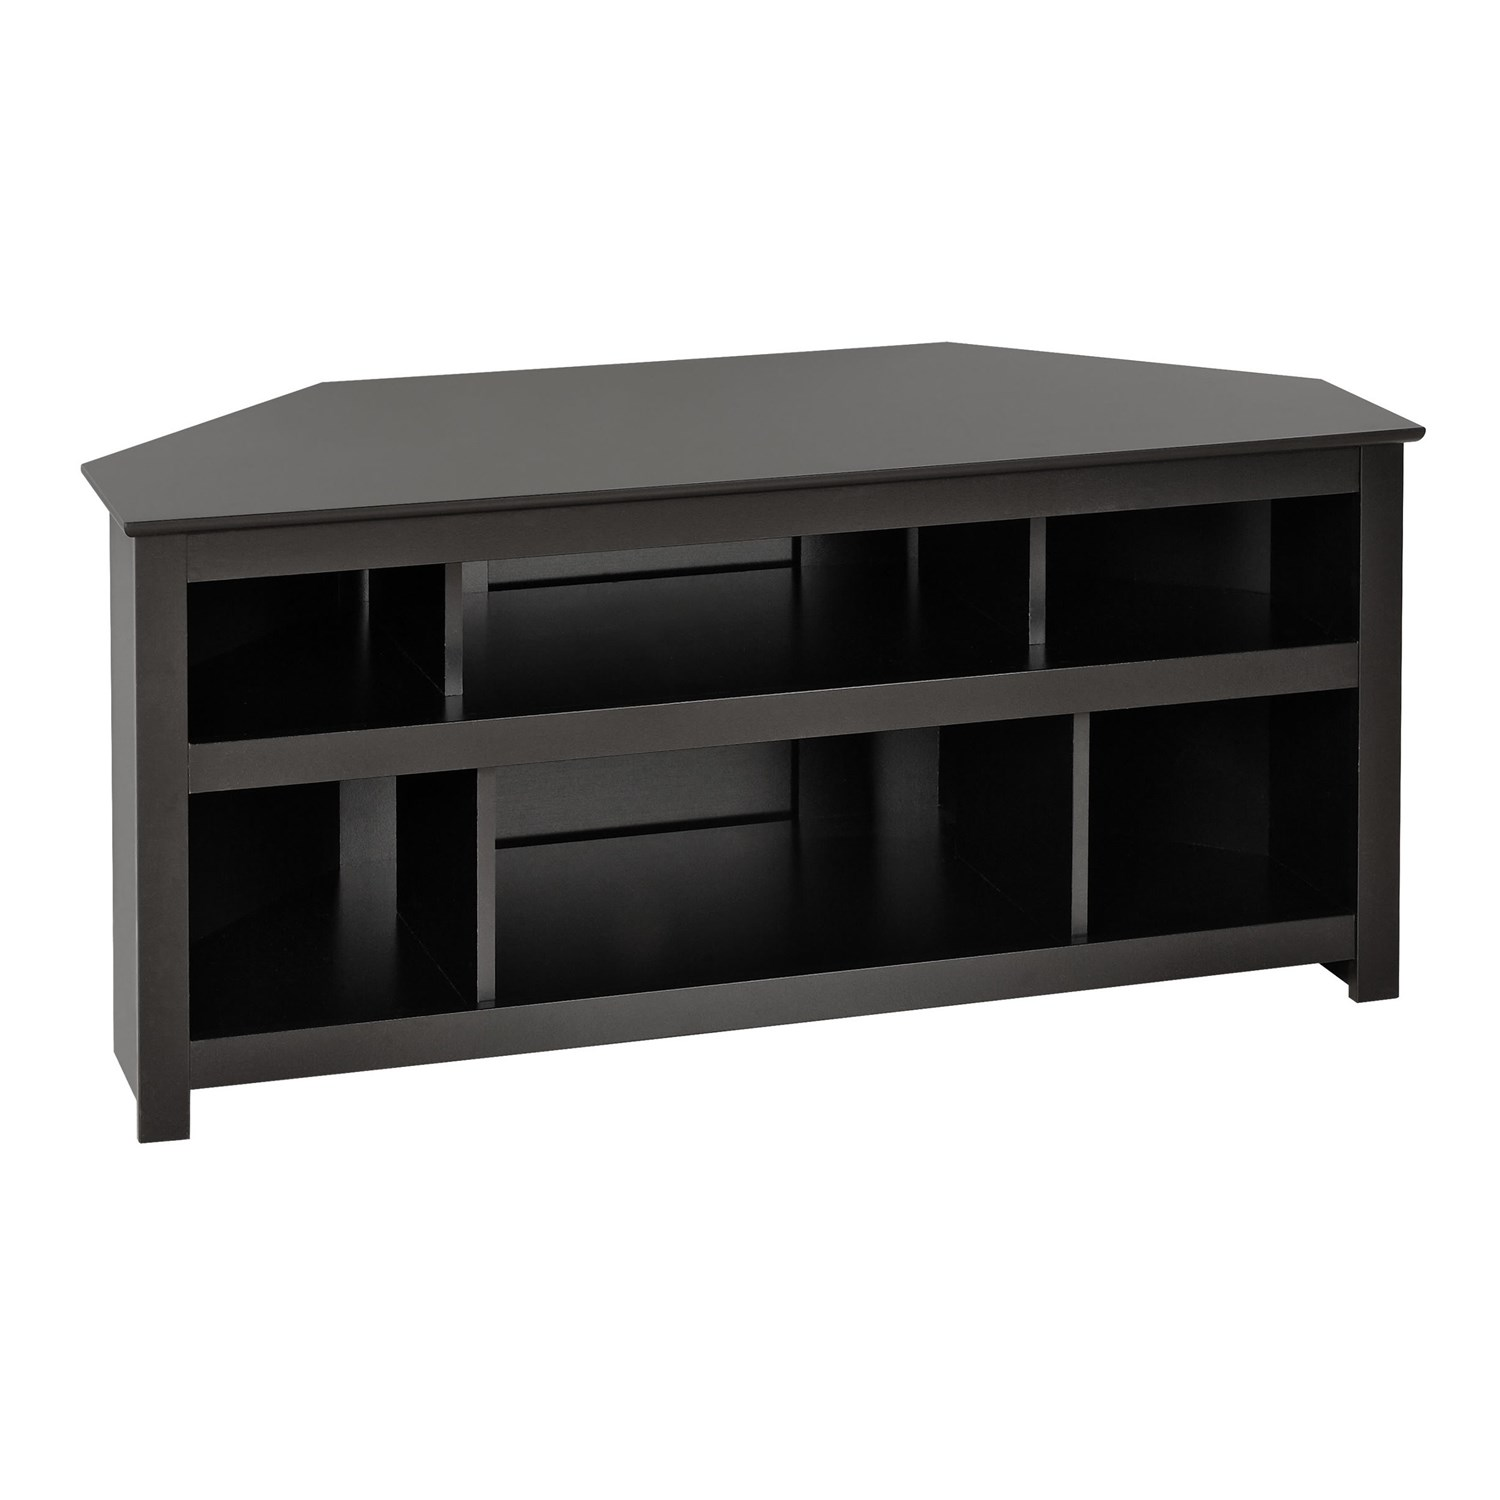 bedroom furniture black and silver photo - 3